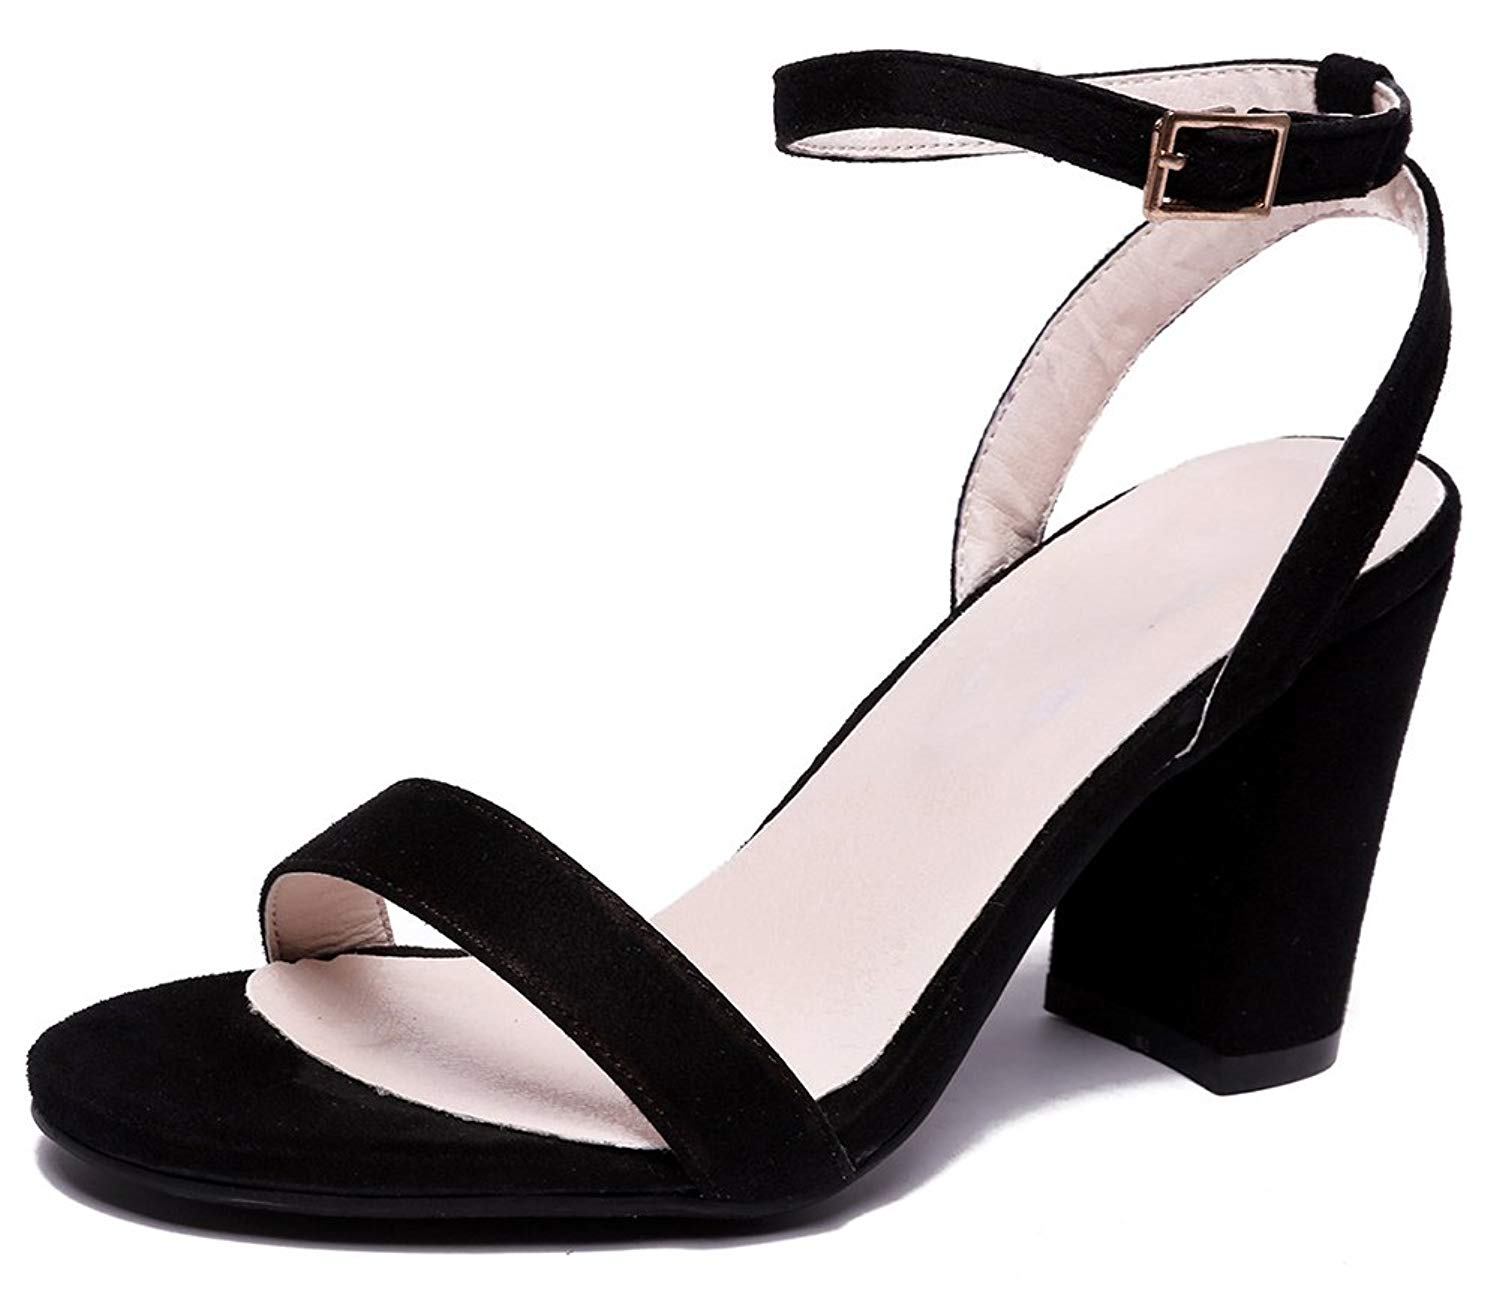 0f36aa1a6a4 Get Quotations · SFNLD Women s Classic Open Toe Cut Out Ankle Strap High  Block Heels Sandals